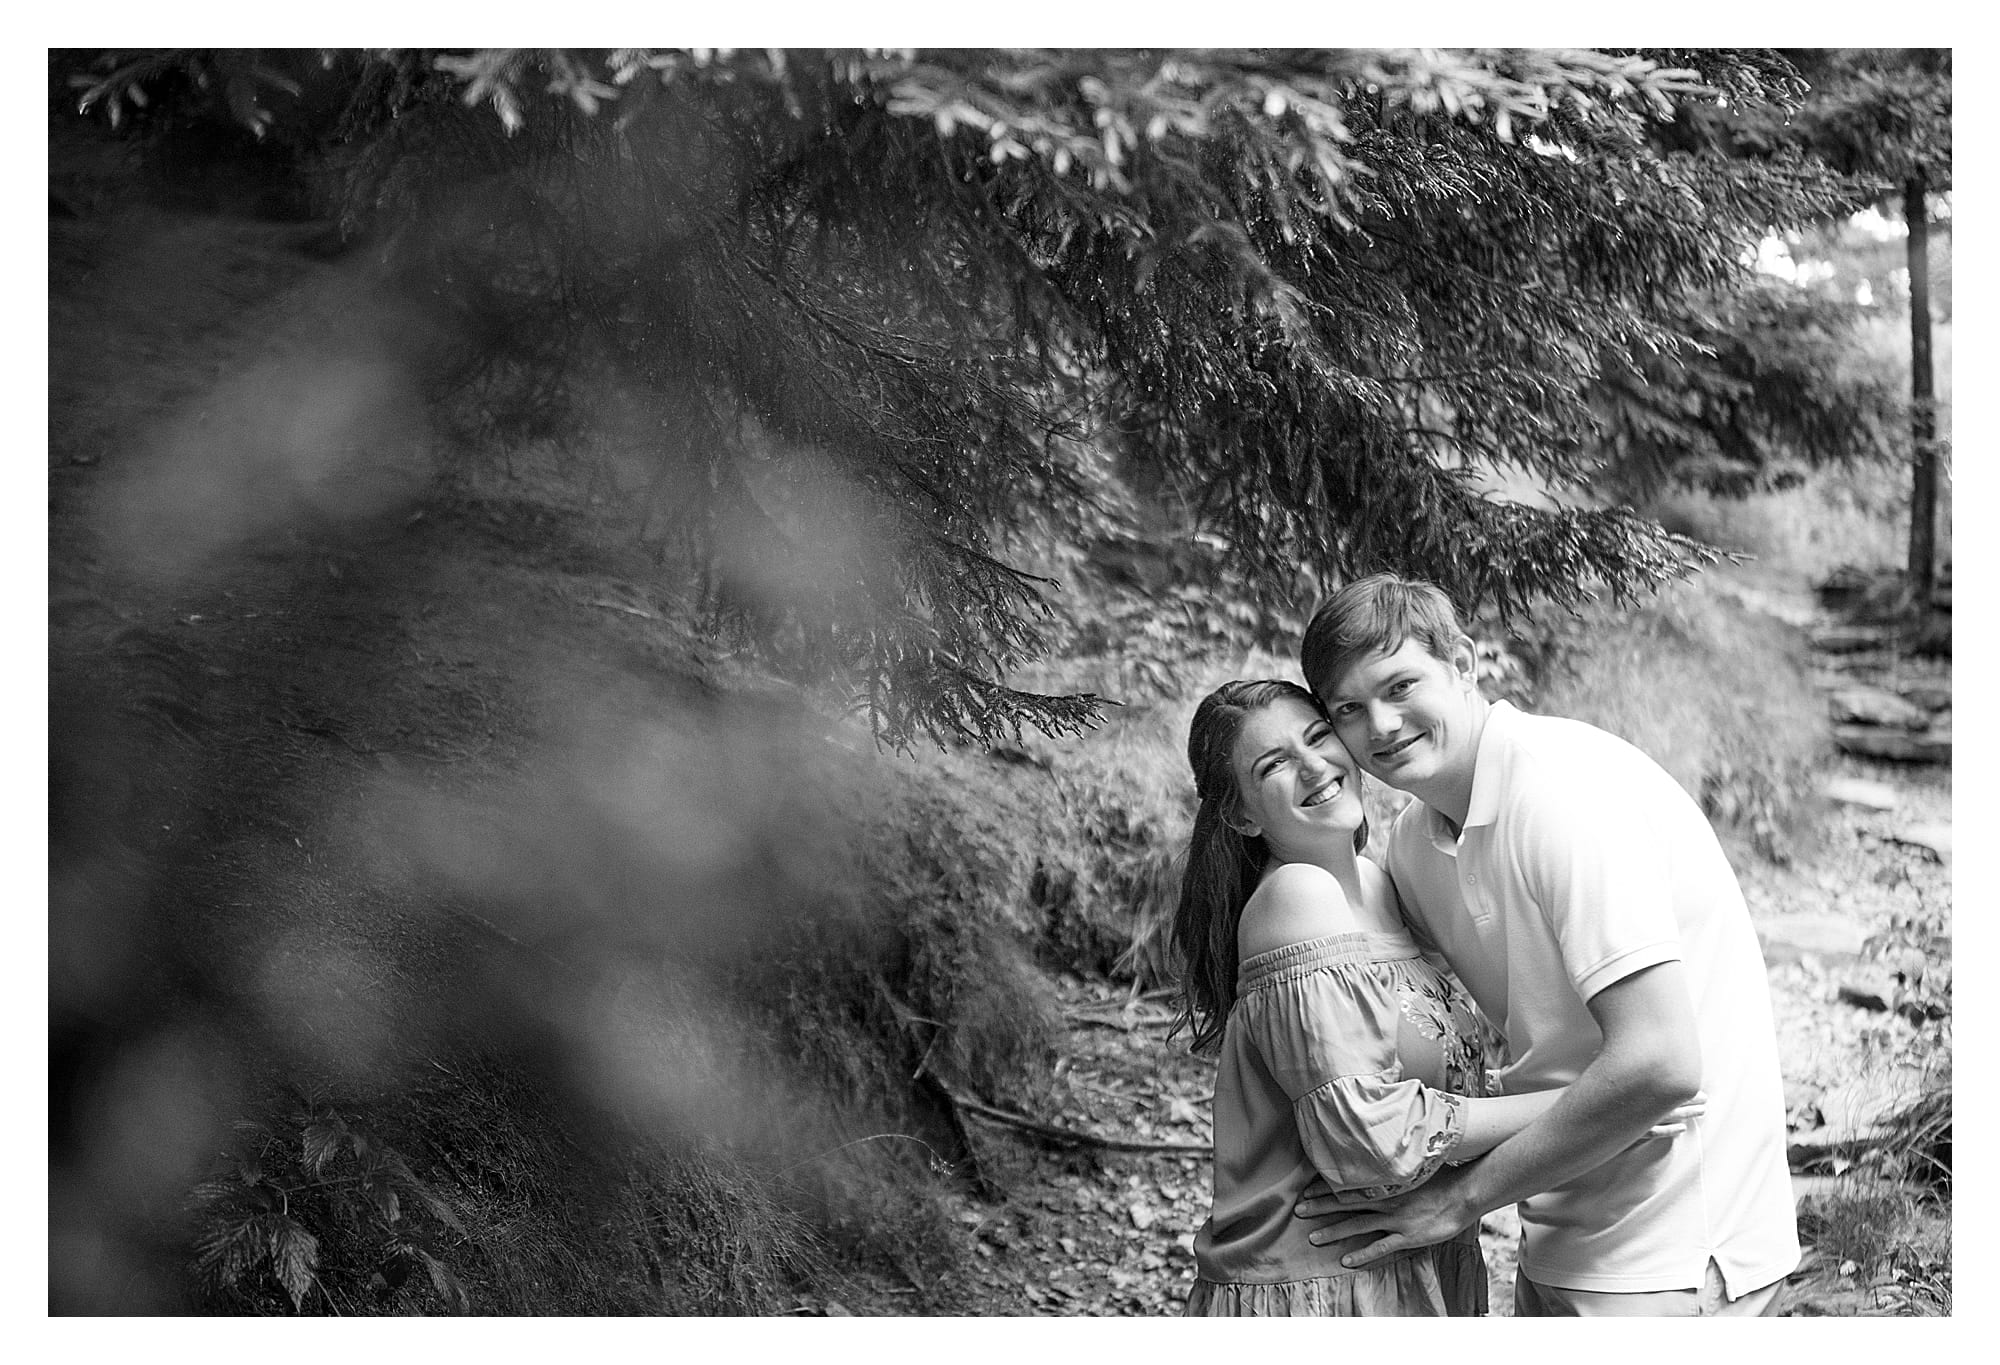 Black and white photo of young engaged couple hugging laughingly while smiling at camera